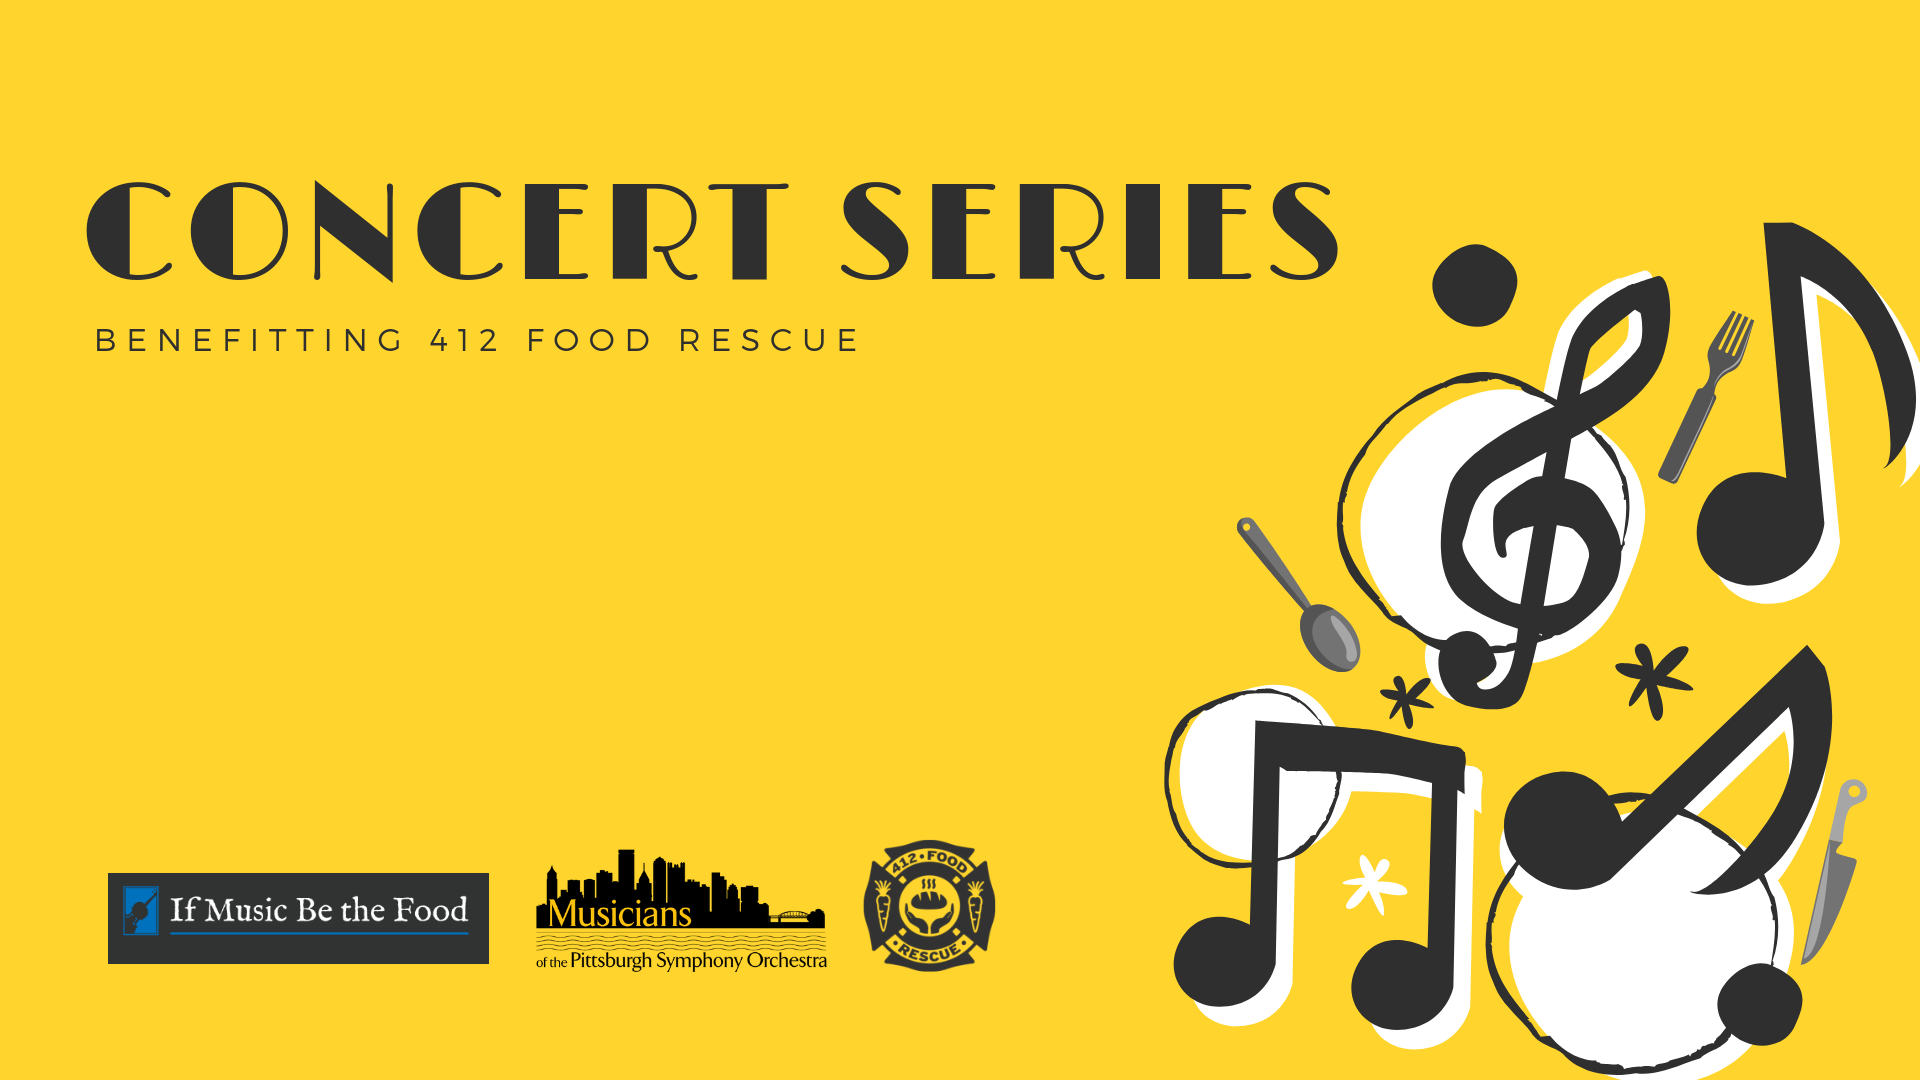 Concert Series presented by Musicians of Steel